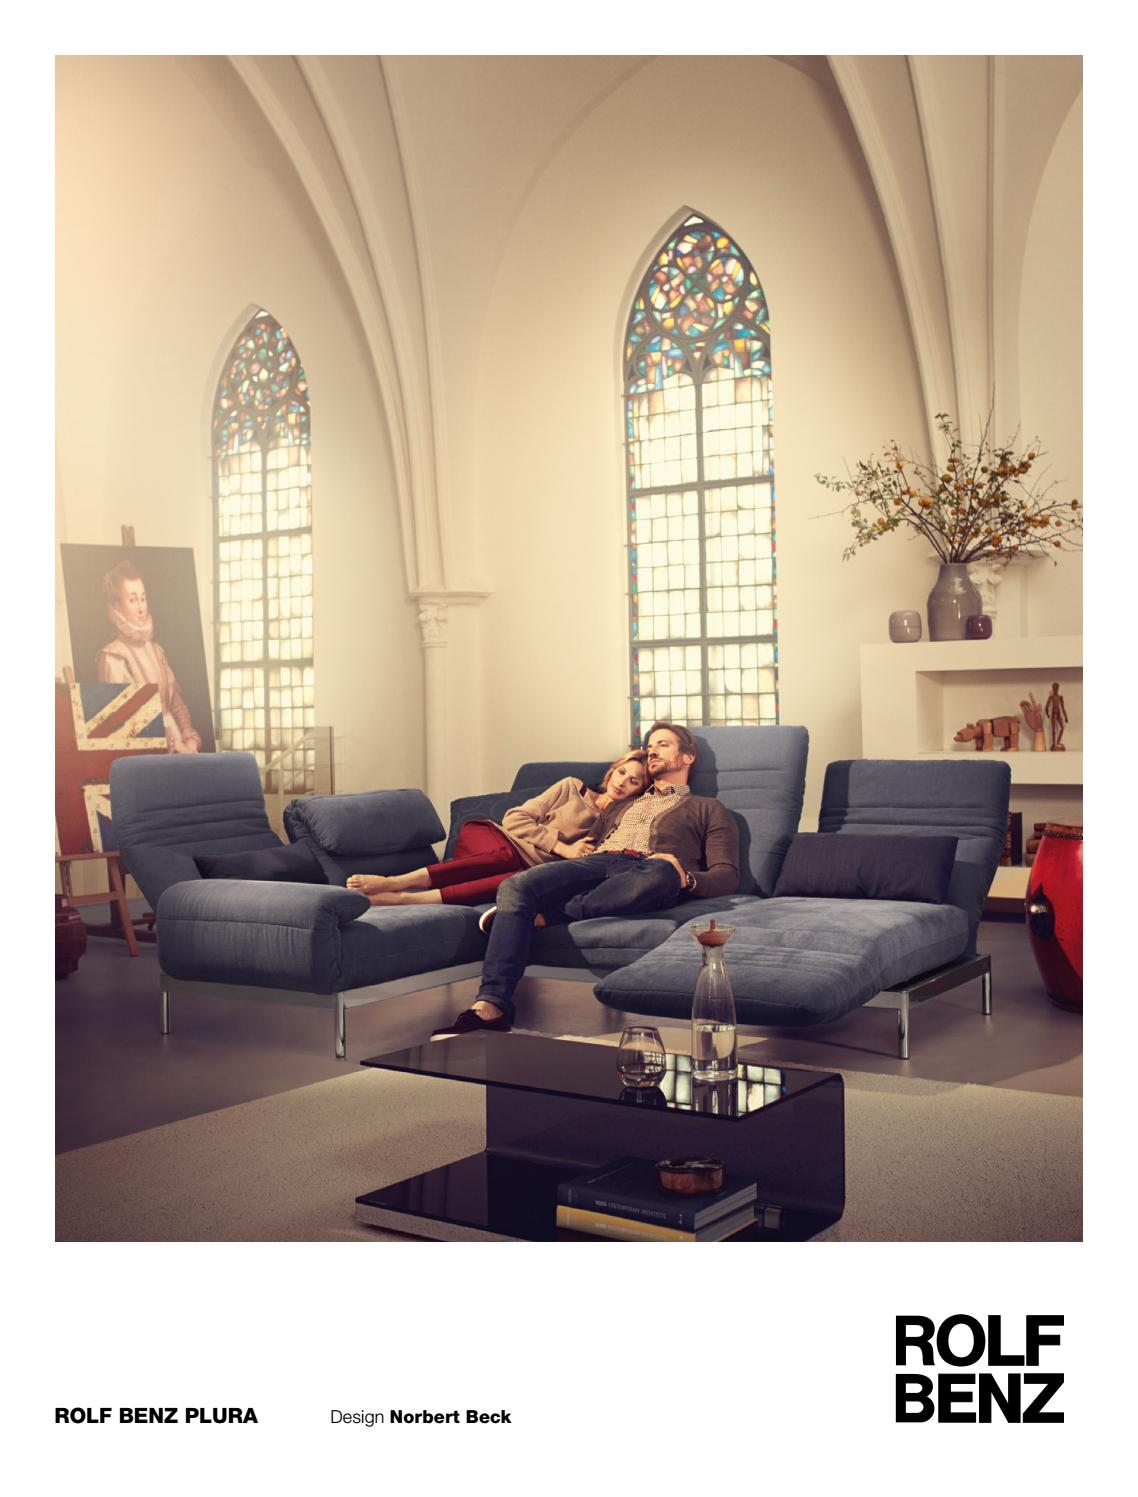 Rolf Benz Sofa 380 Plura Xtra Rolf Benz Plura By Xtra Furniture Issuu